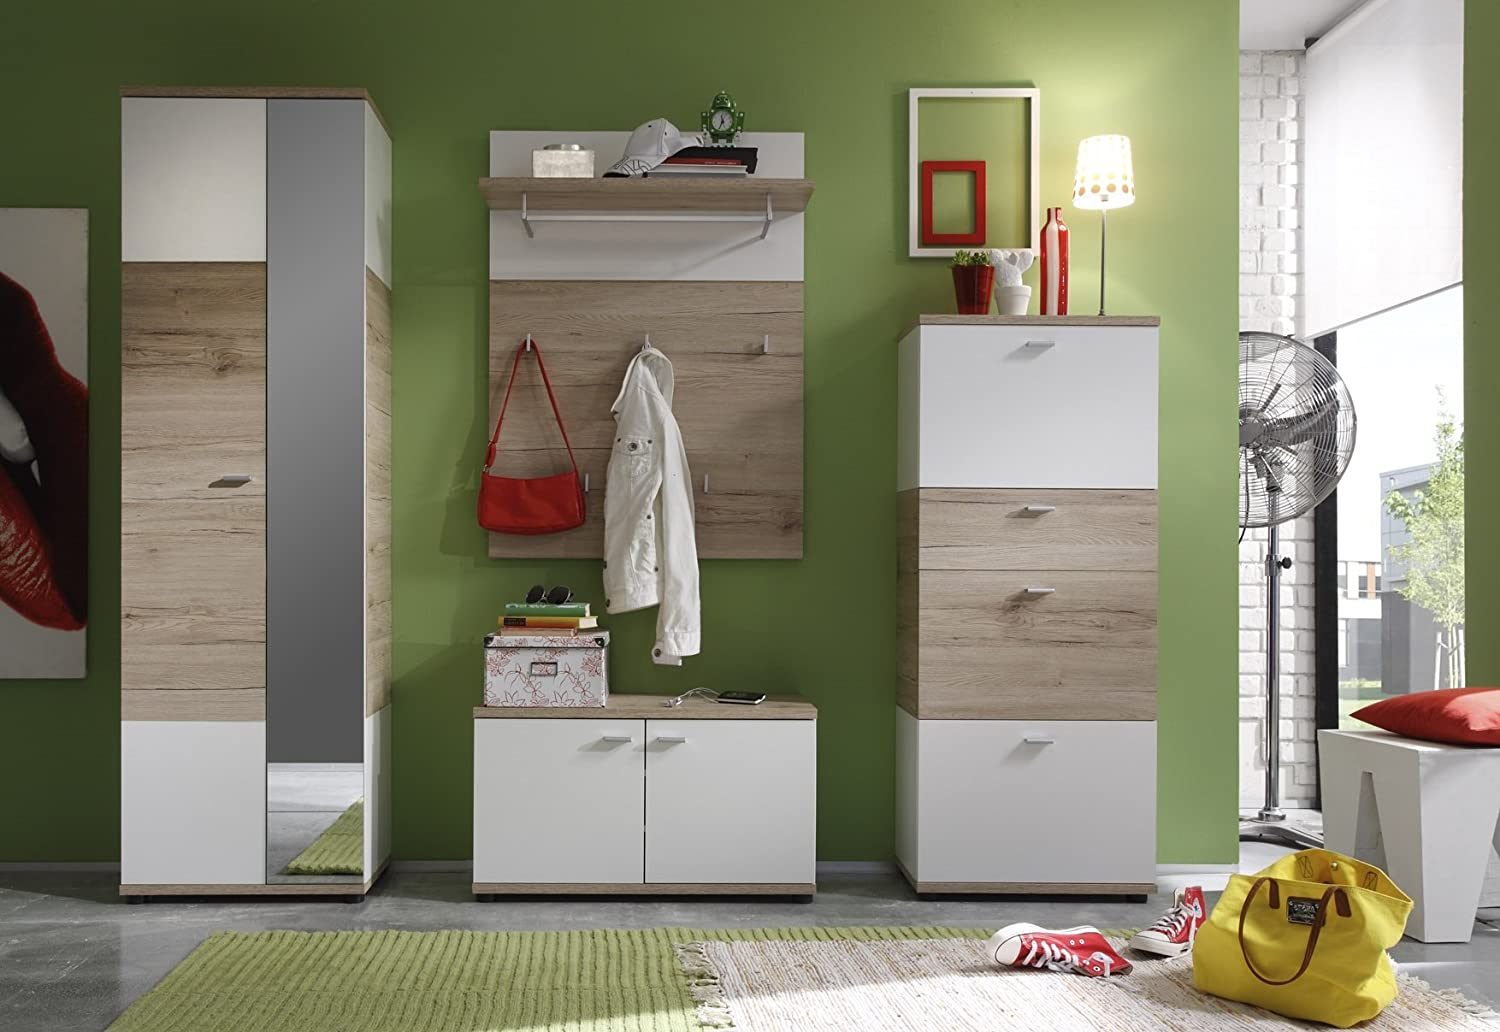 garderobe weiss cheap garderobe weiss with garderobe weiss with garderobe weiss finest. Black Bedroom Furniture Sets. Home Design Ideas